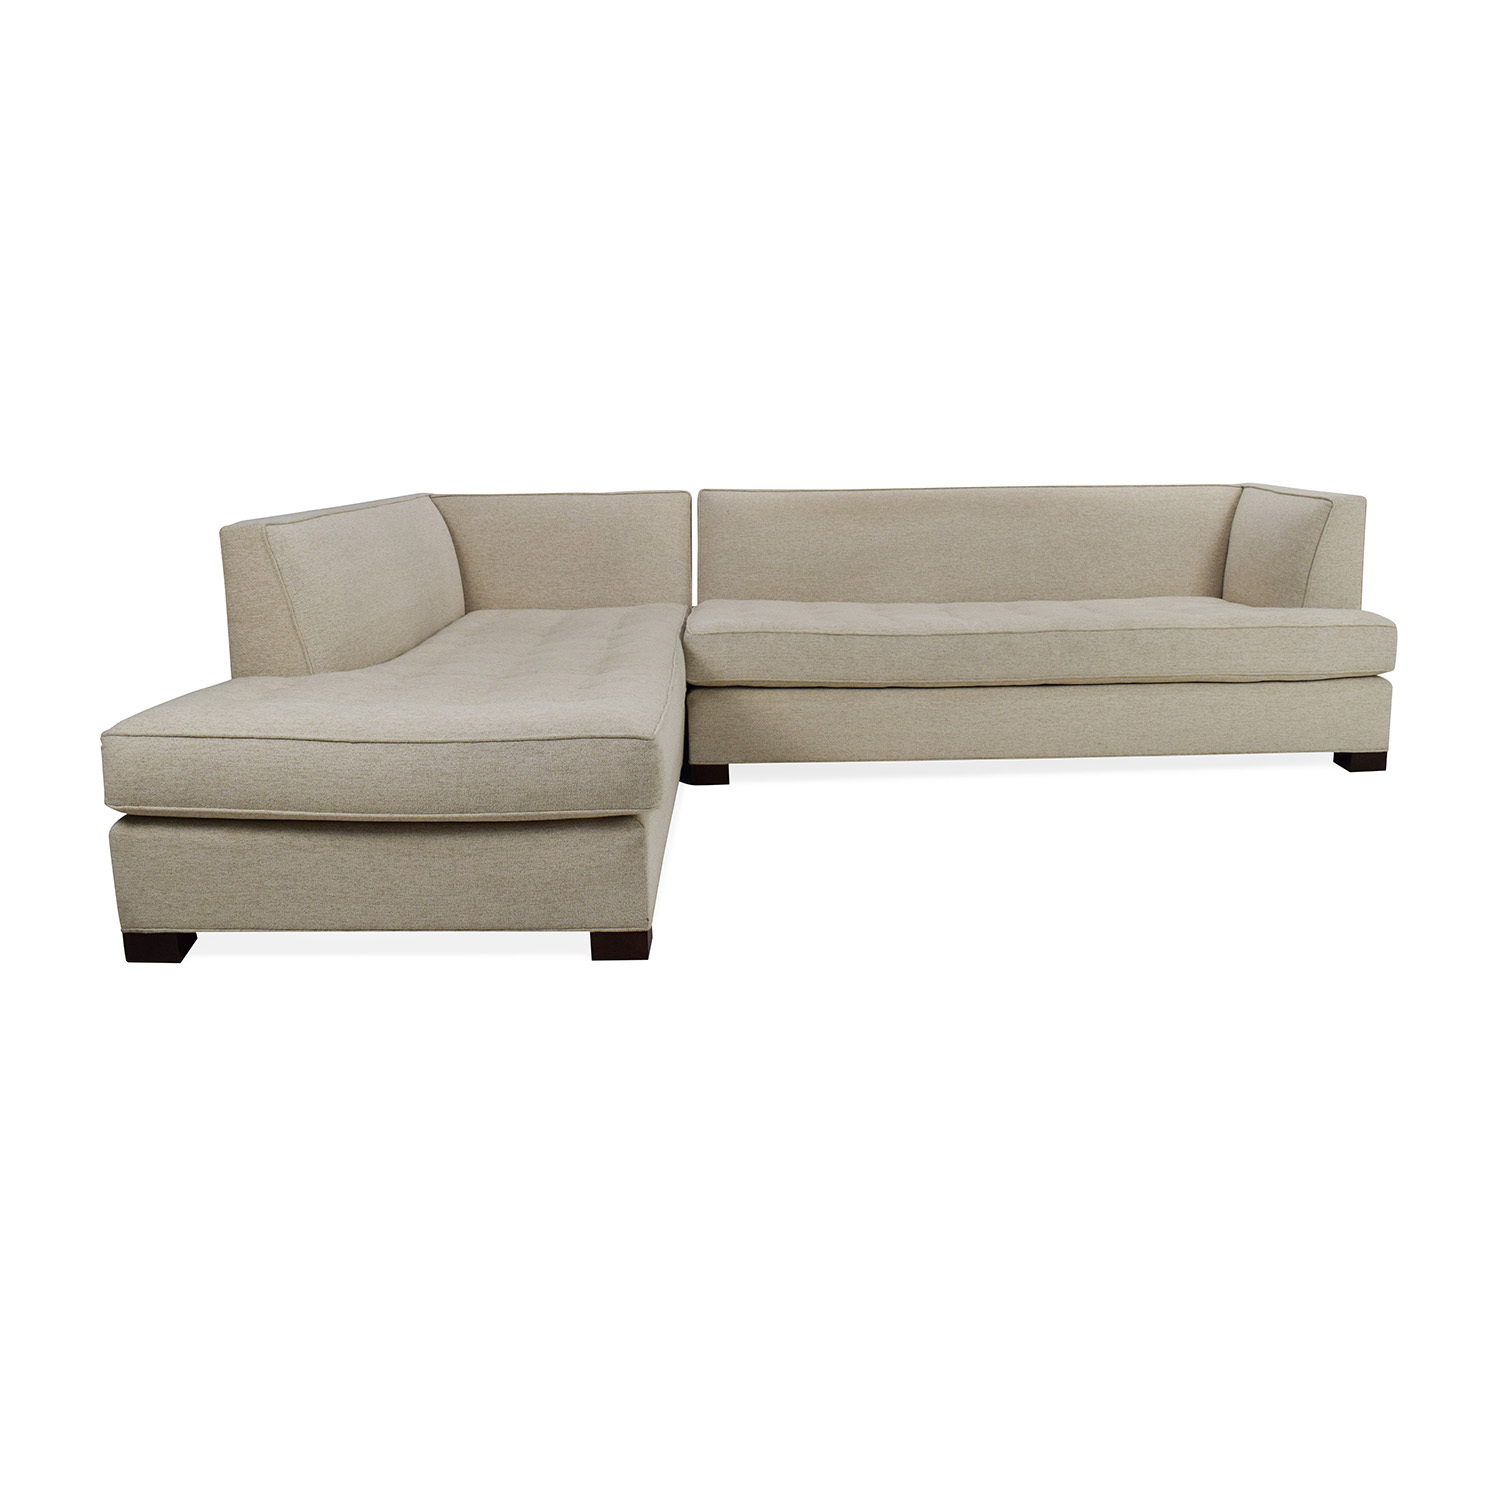 Mitchell Gold + Bob Williams Mitchell Gold + Bob Williams Jordan Sectional for sale